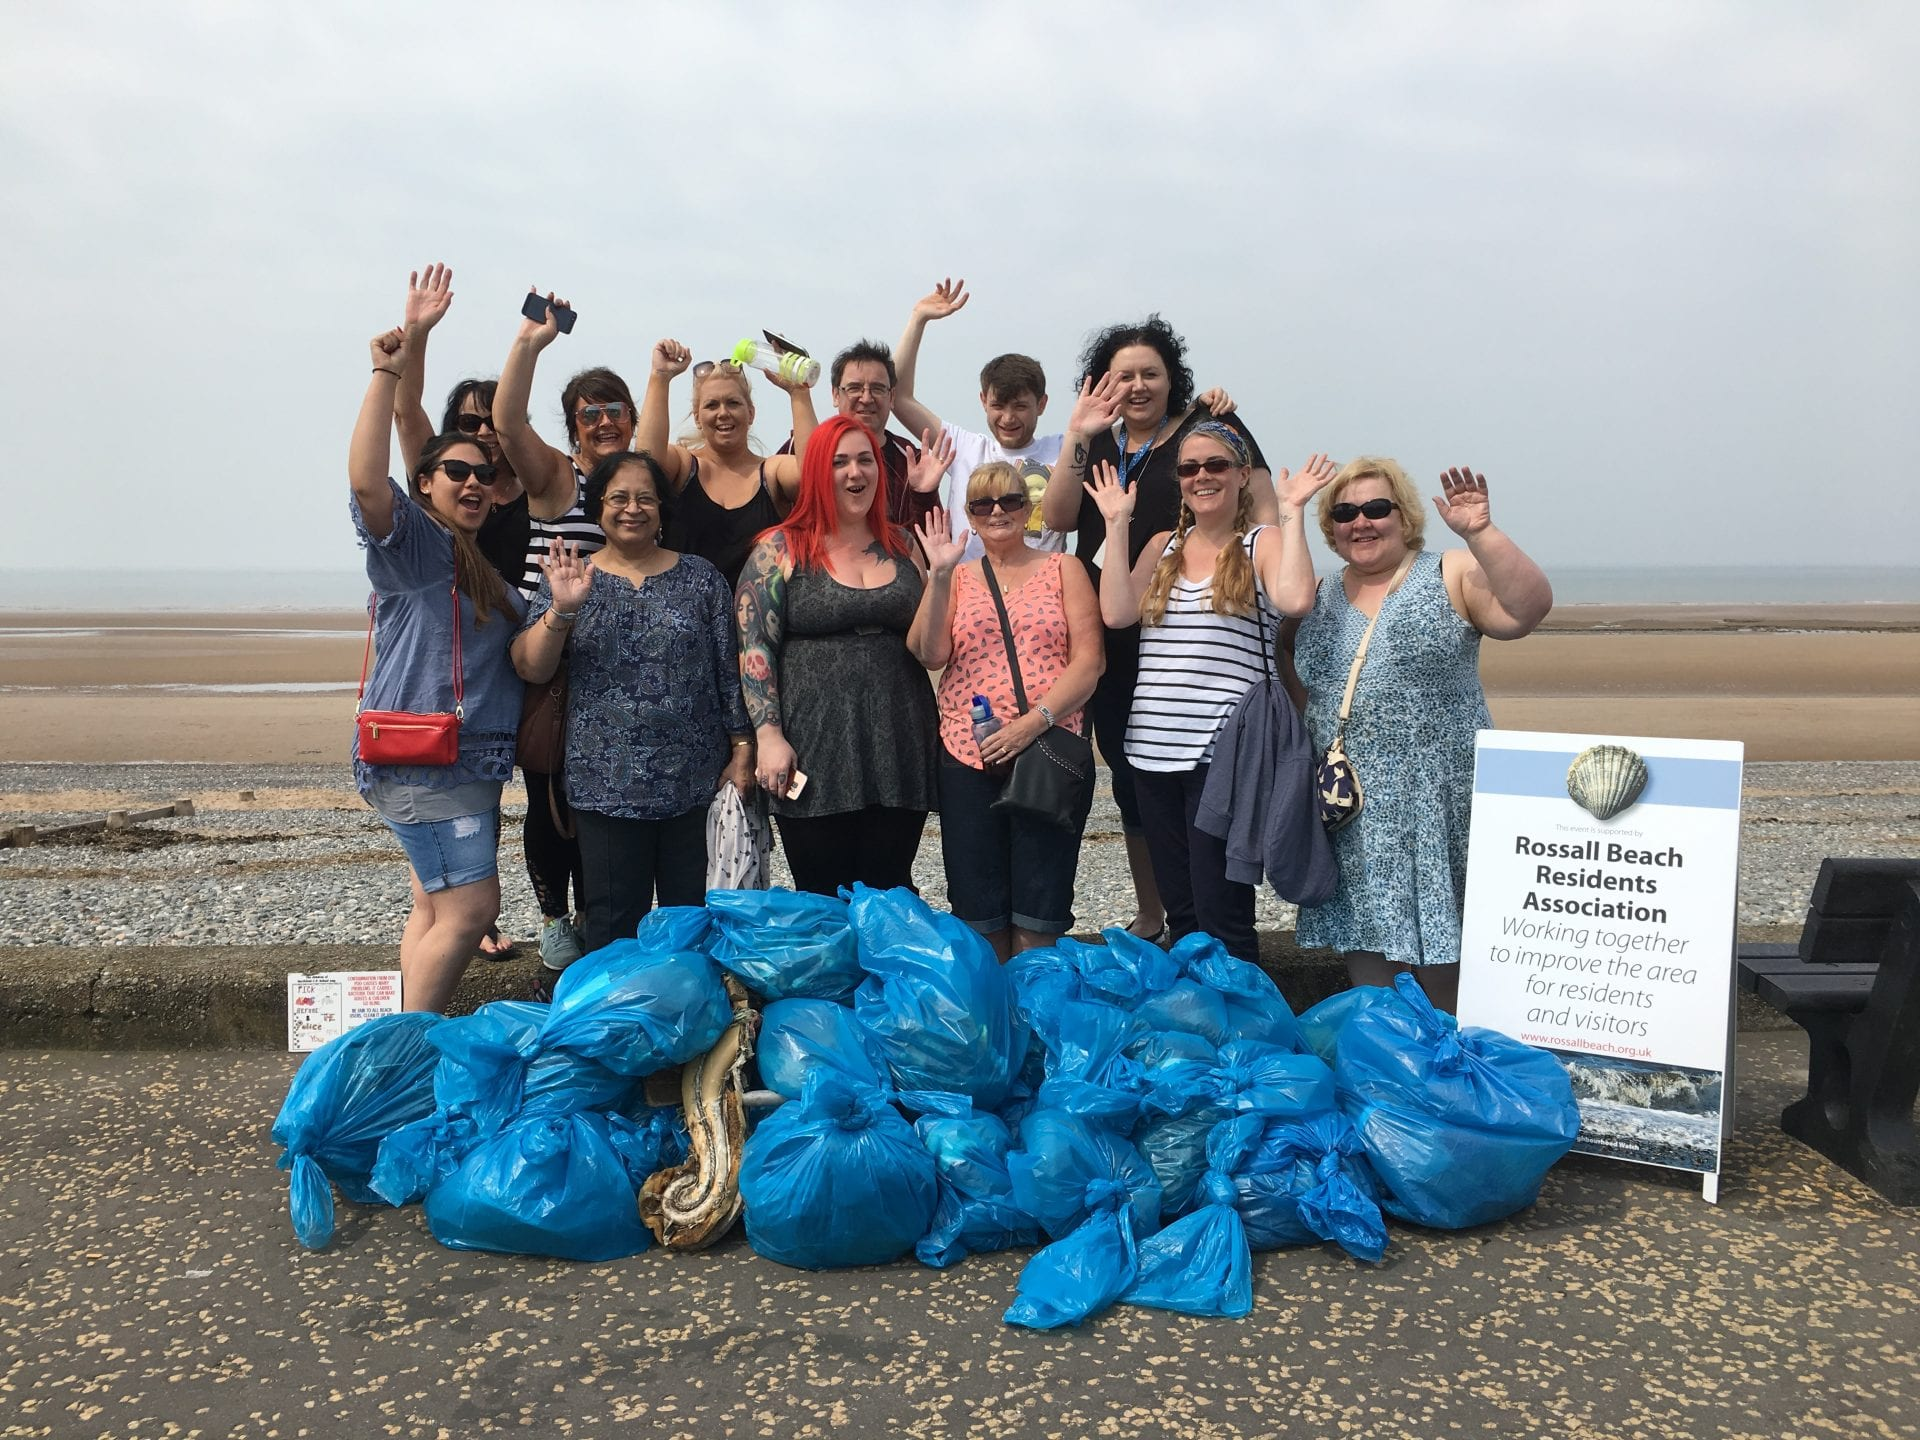 Beach clean day and what a glorious day for it